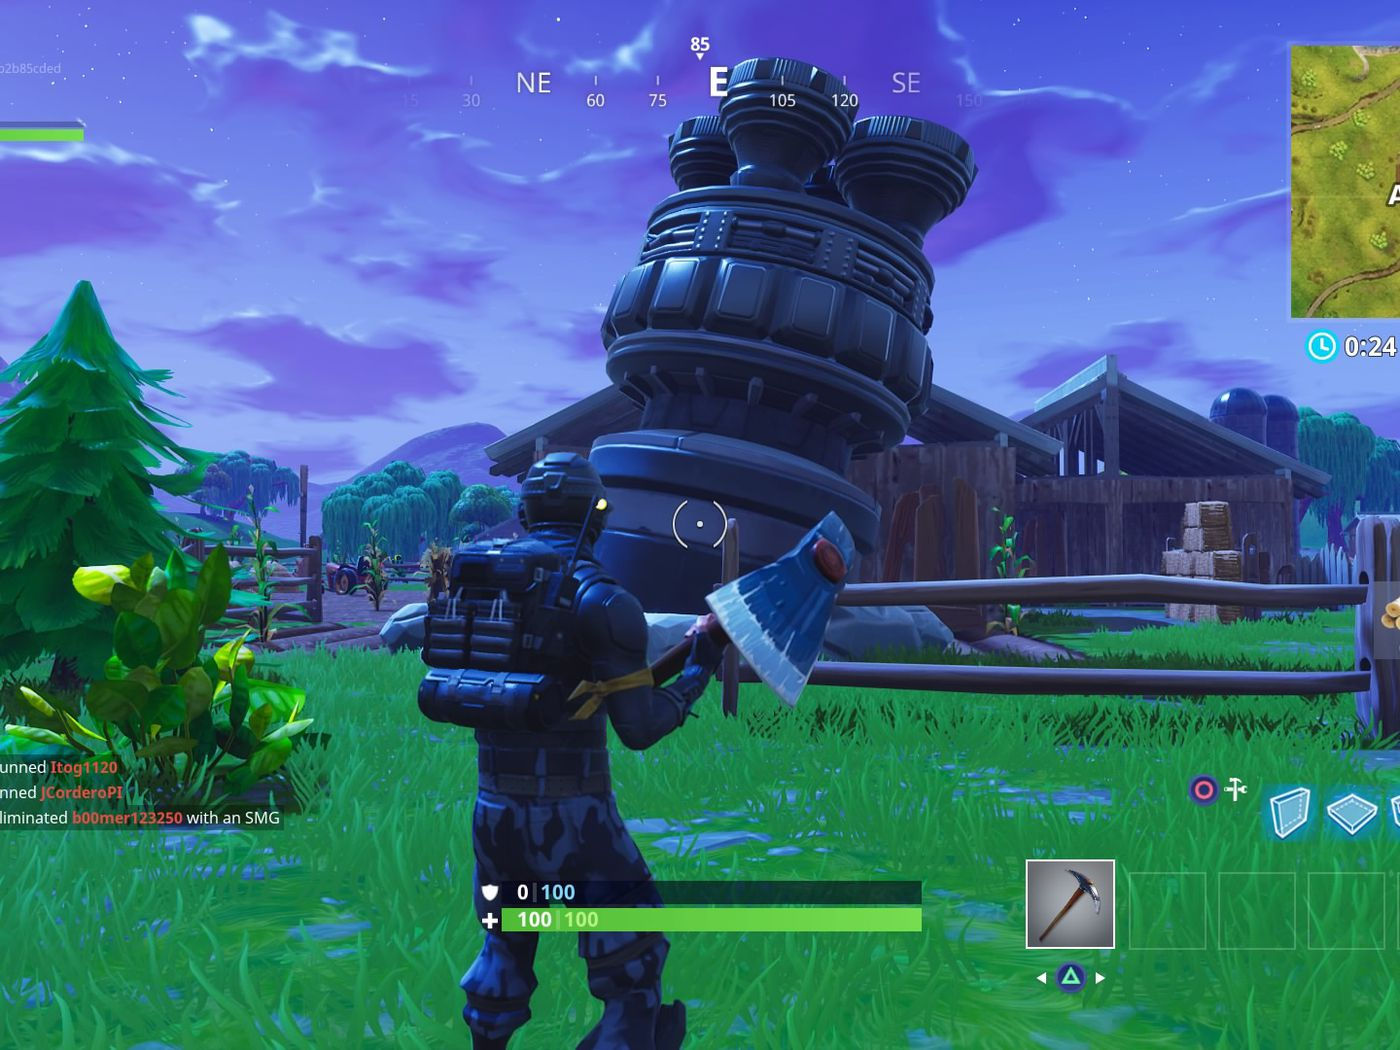 Fortnite Has The Most Interesting Video Game Story In Years The Verge